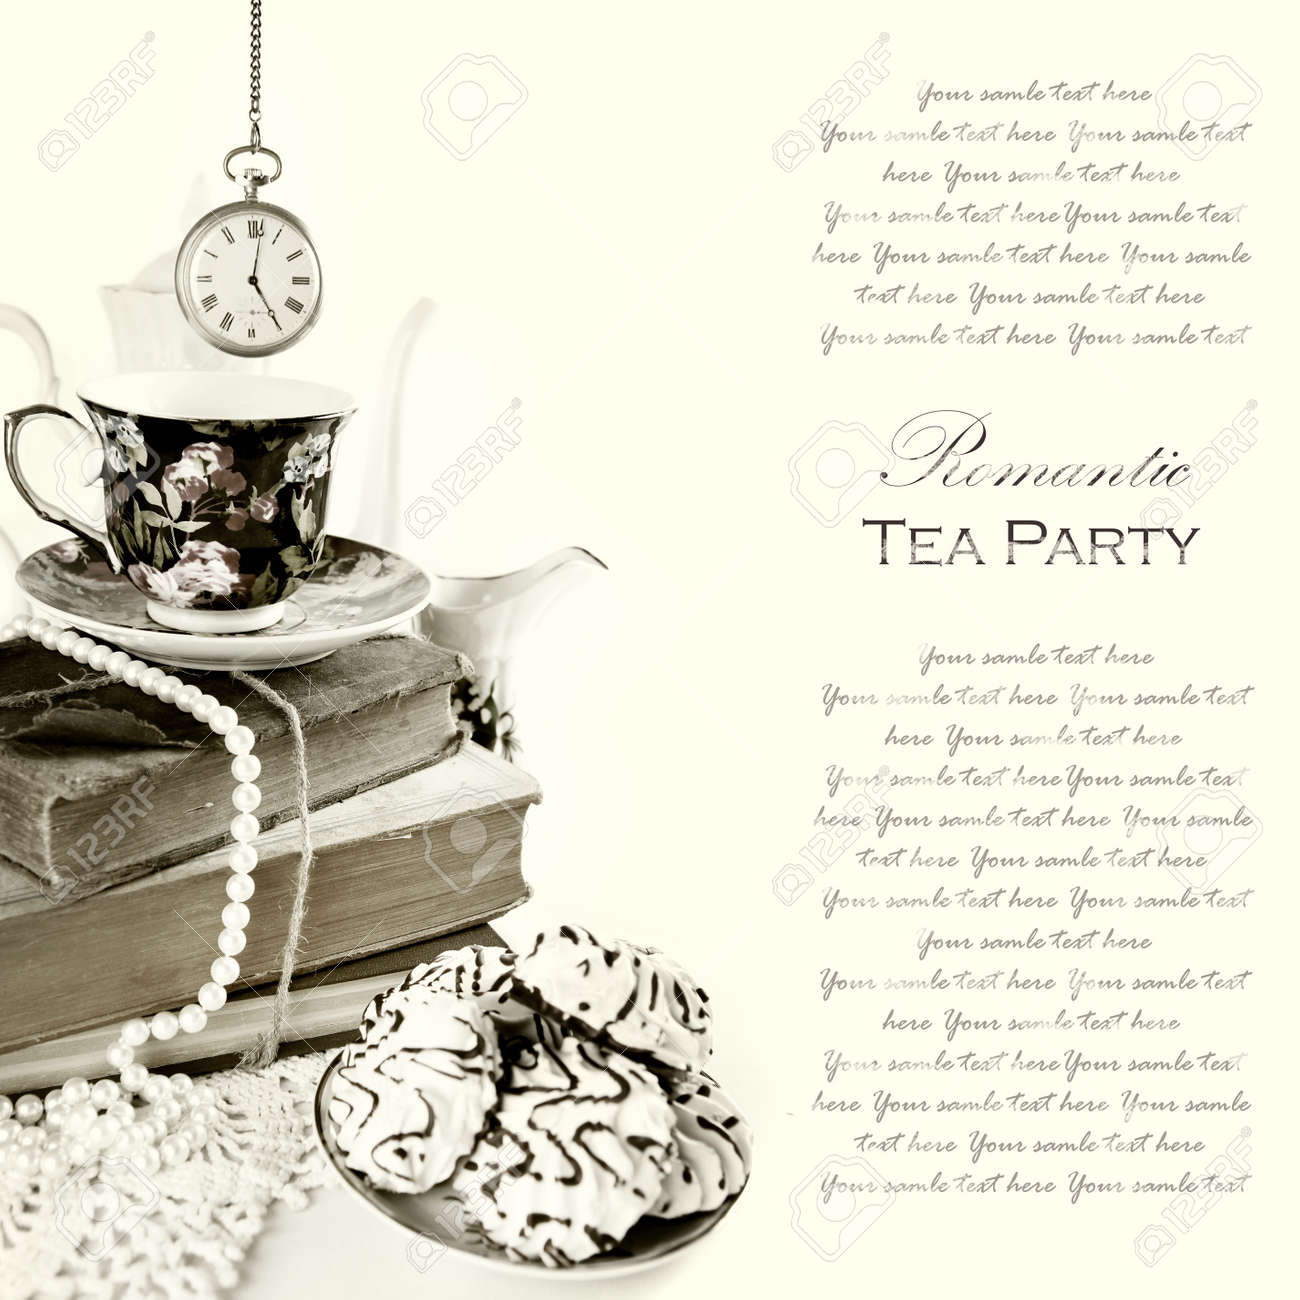 Romantic English 5 o'clock Tea Party Background with vintage pocket watch and sweets Stock Photo - 15687175